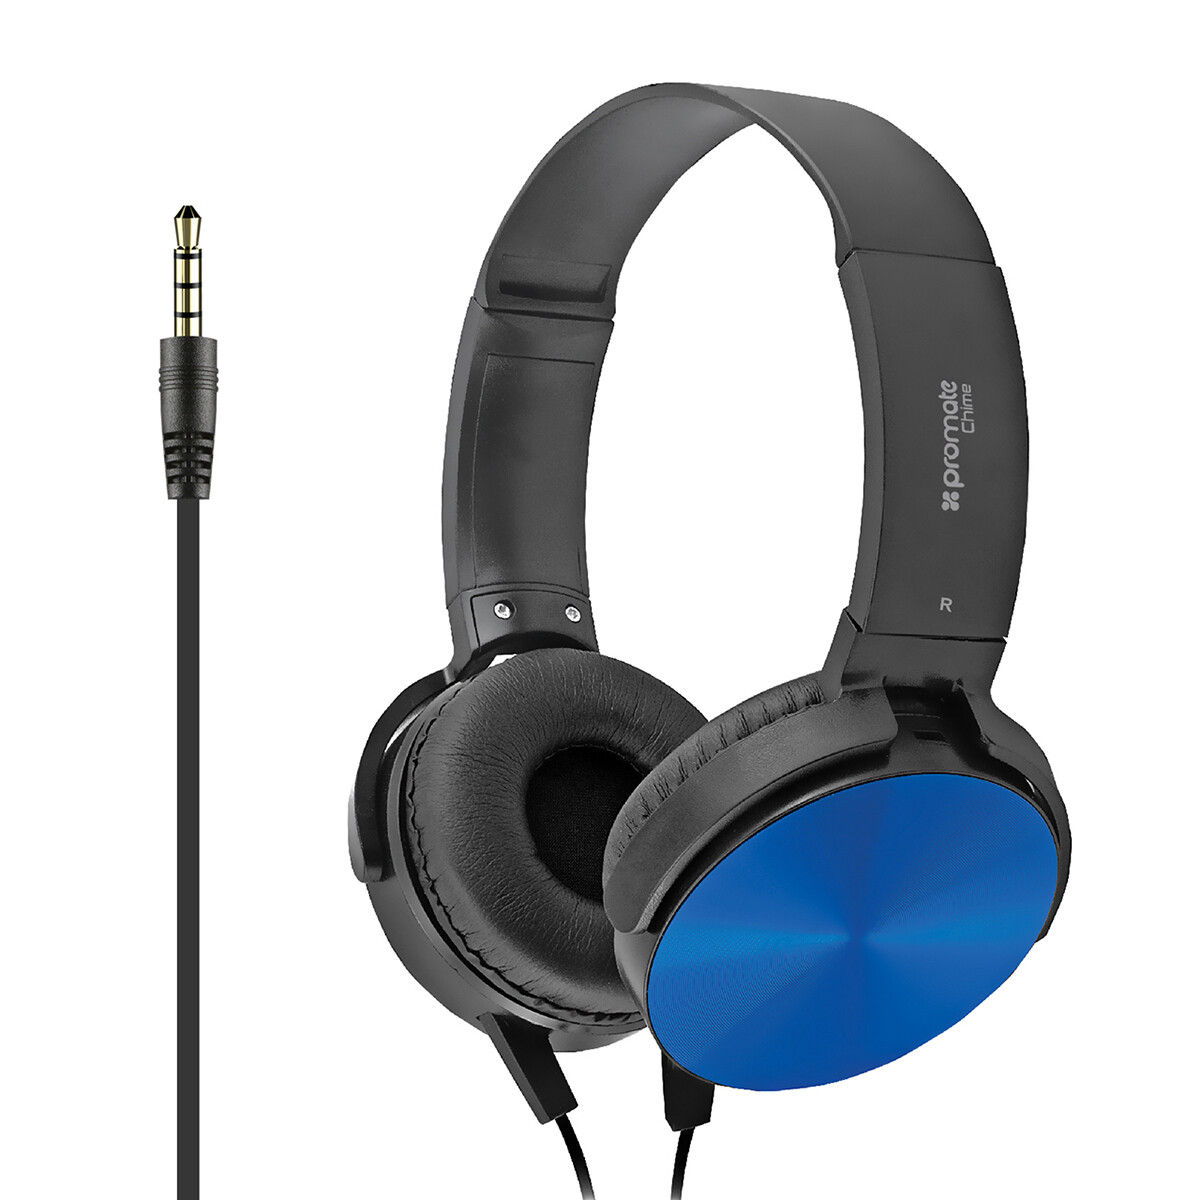 PROMATE Chime Rotatable Over-the-ear Wired Stereo Headset